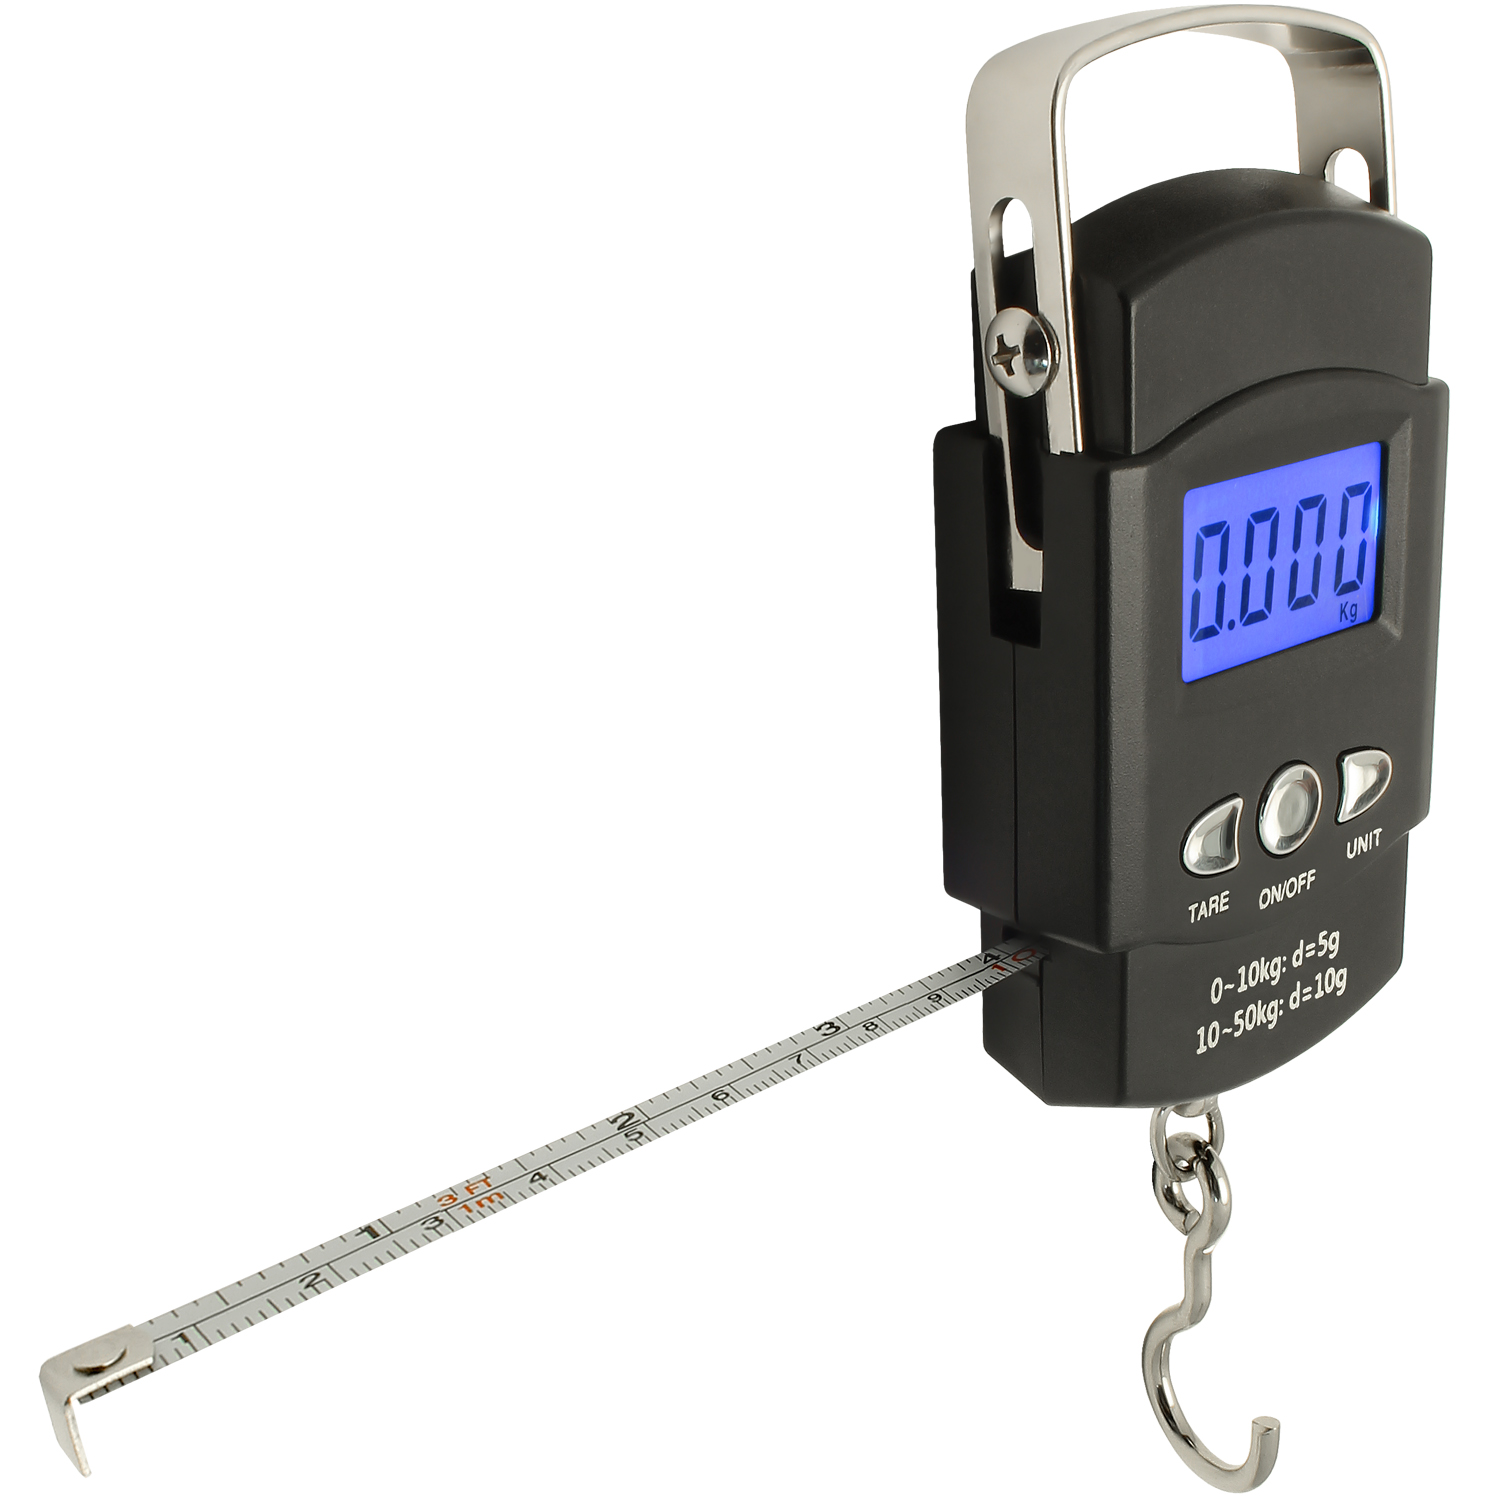 CampTeck Electronic Fish Luggage Postal Hanging Hook Weighing Scale (50kg/110lbs) with Digital Display & Measuring Tape